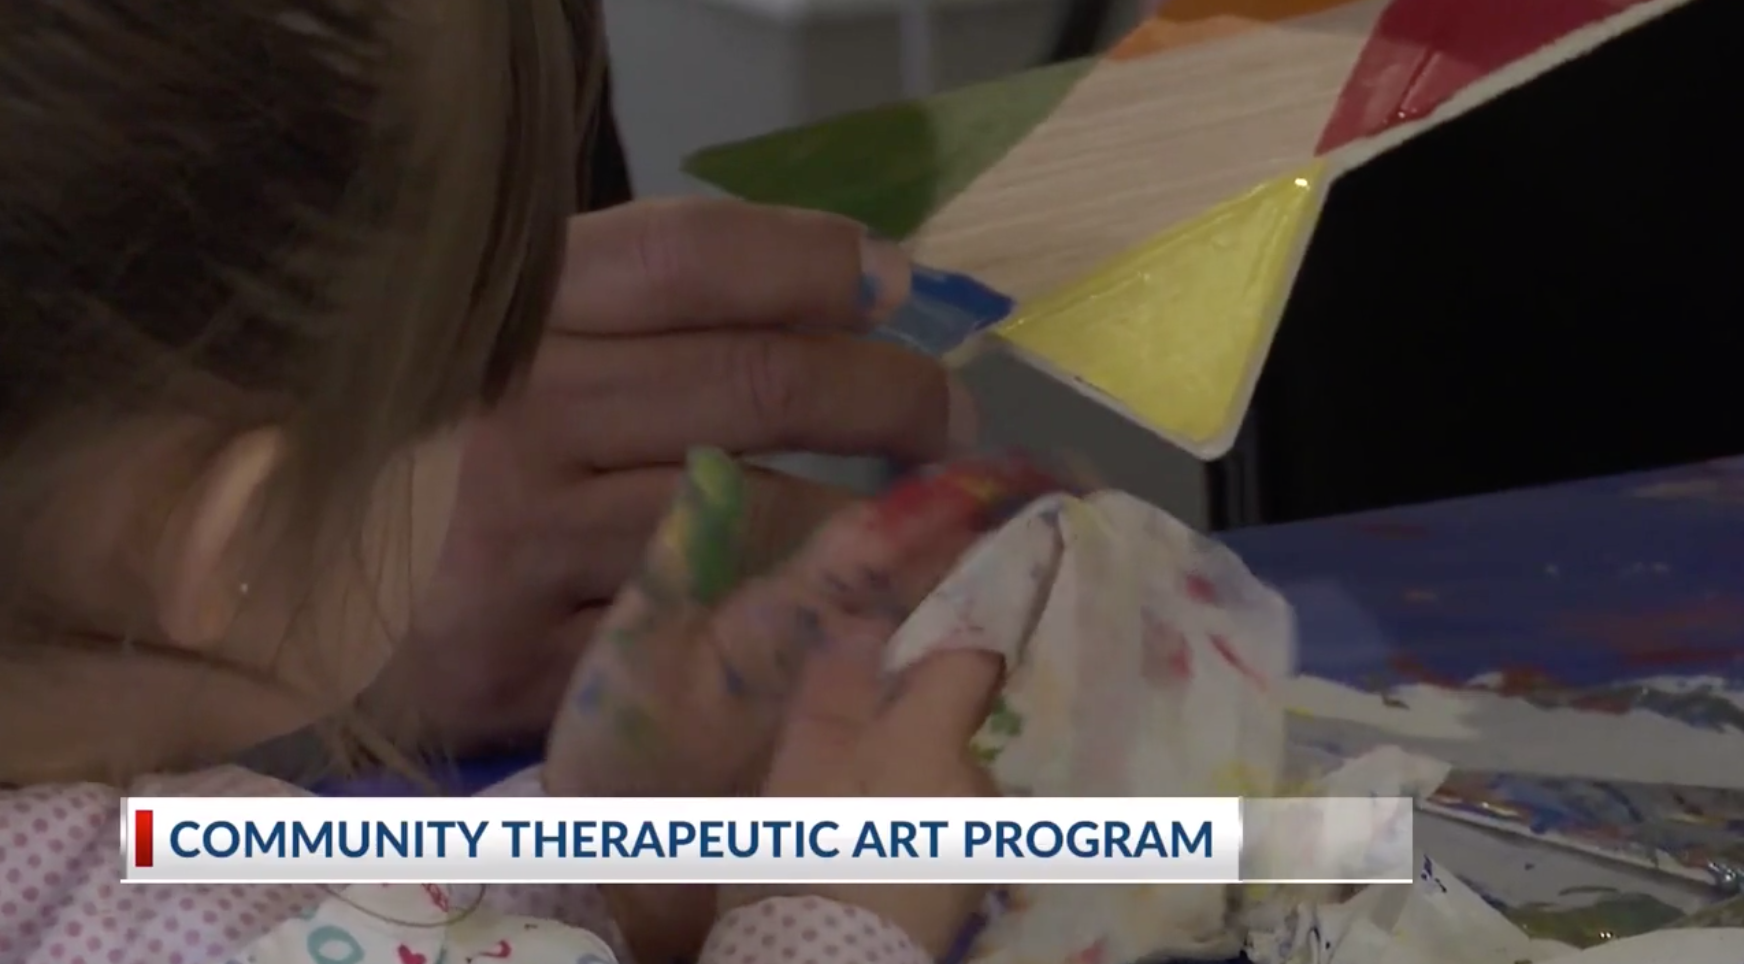 A community works to heal from August 3 tragedy through art